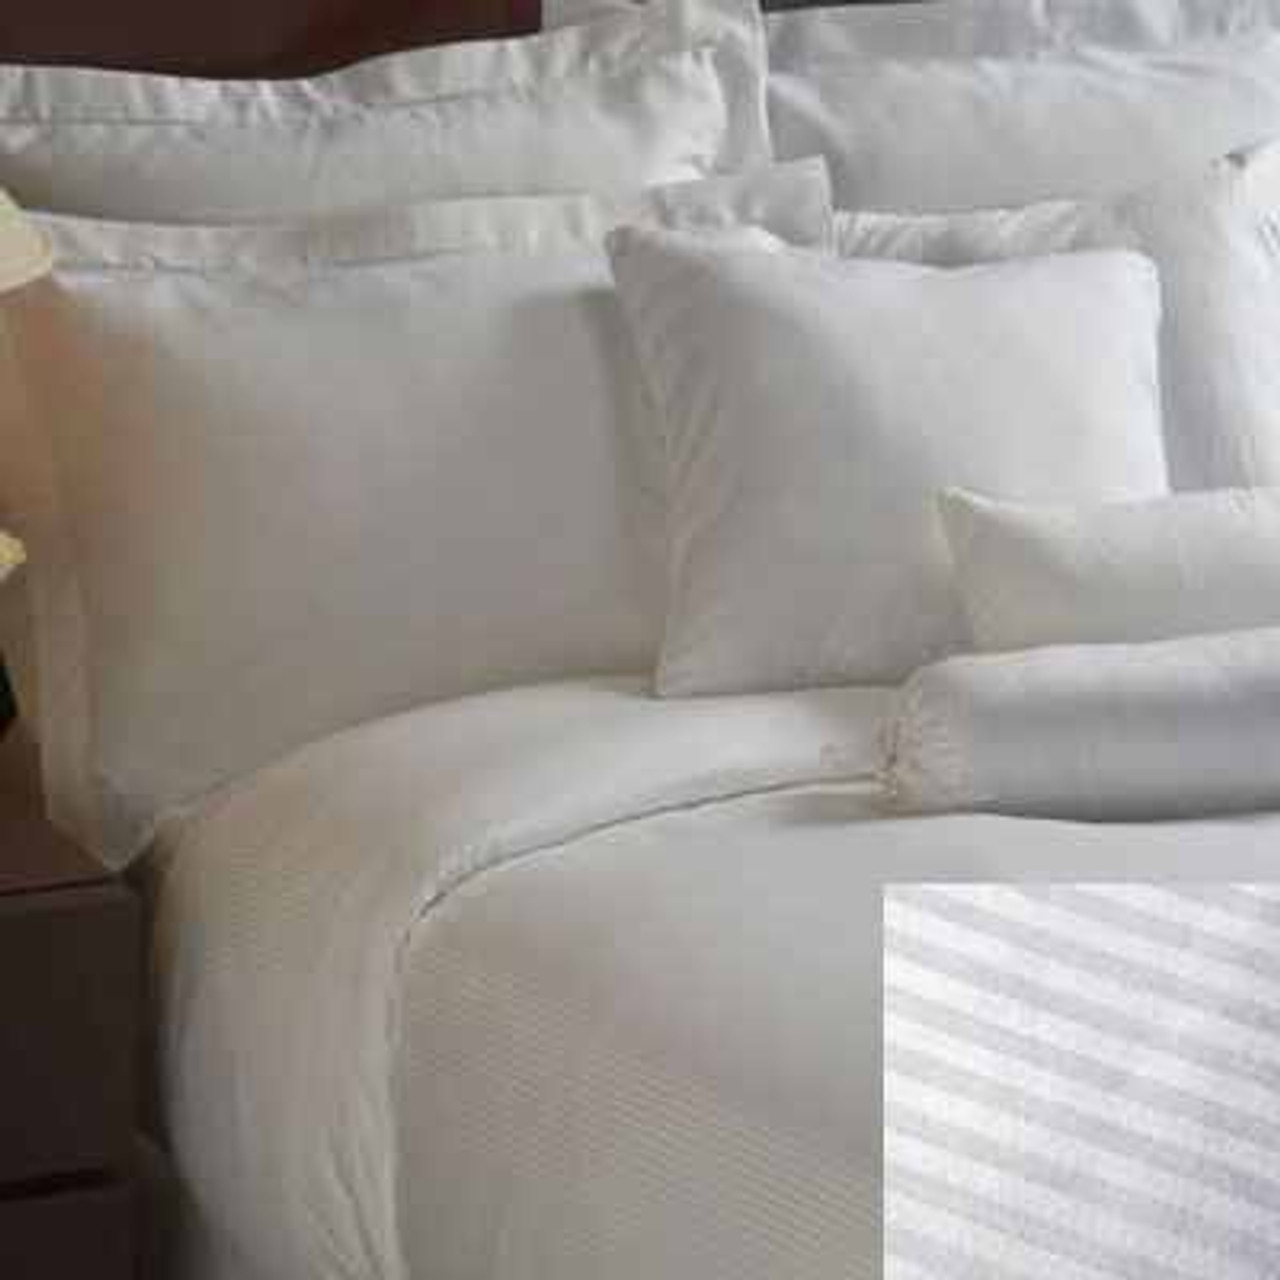 1888 Mills 1888 Mills or Magnificence or Duvet Covers or Striped or White or Linen or Pack of 6